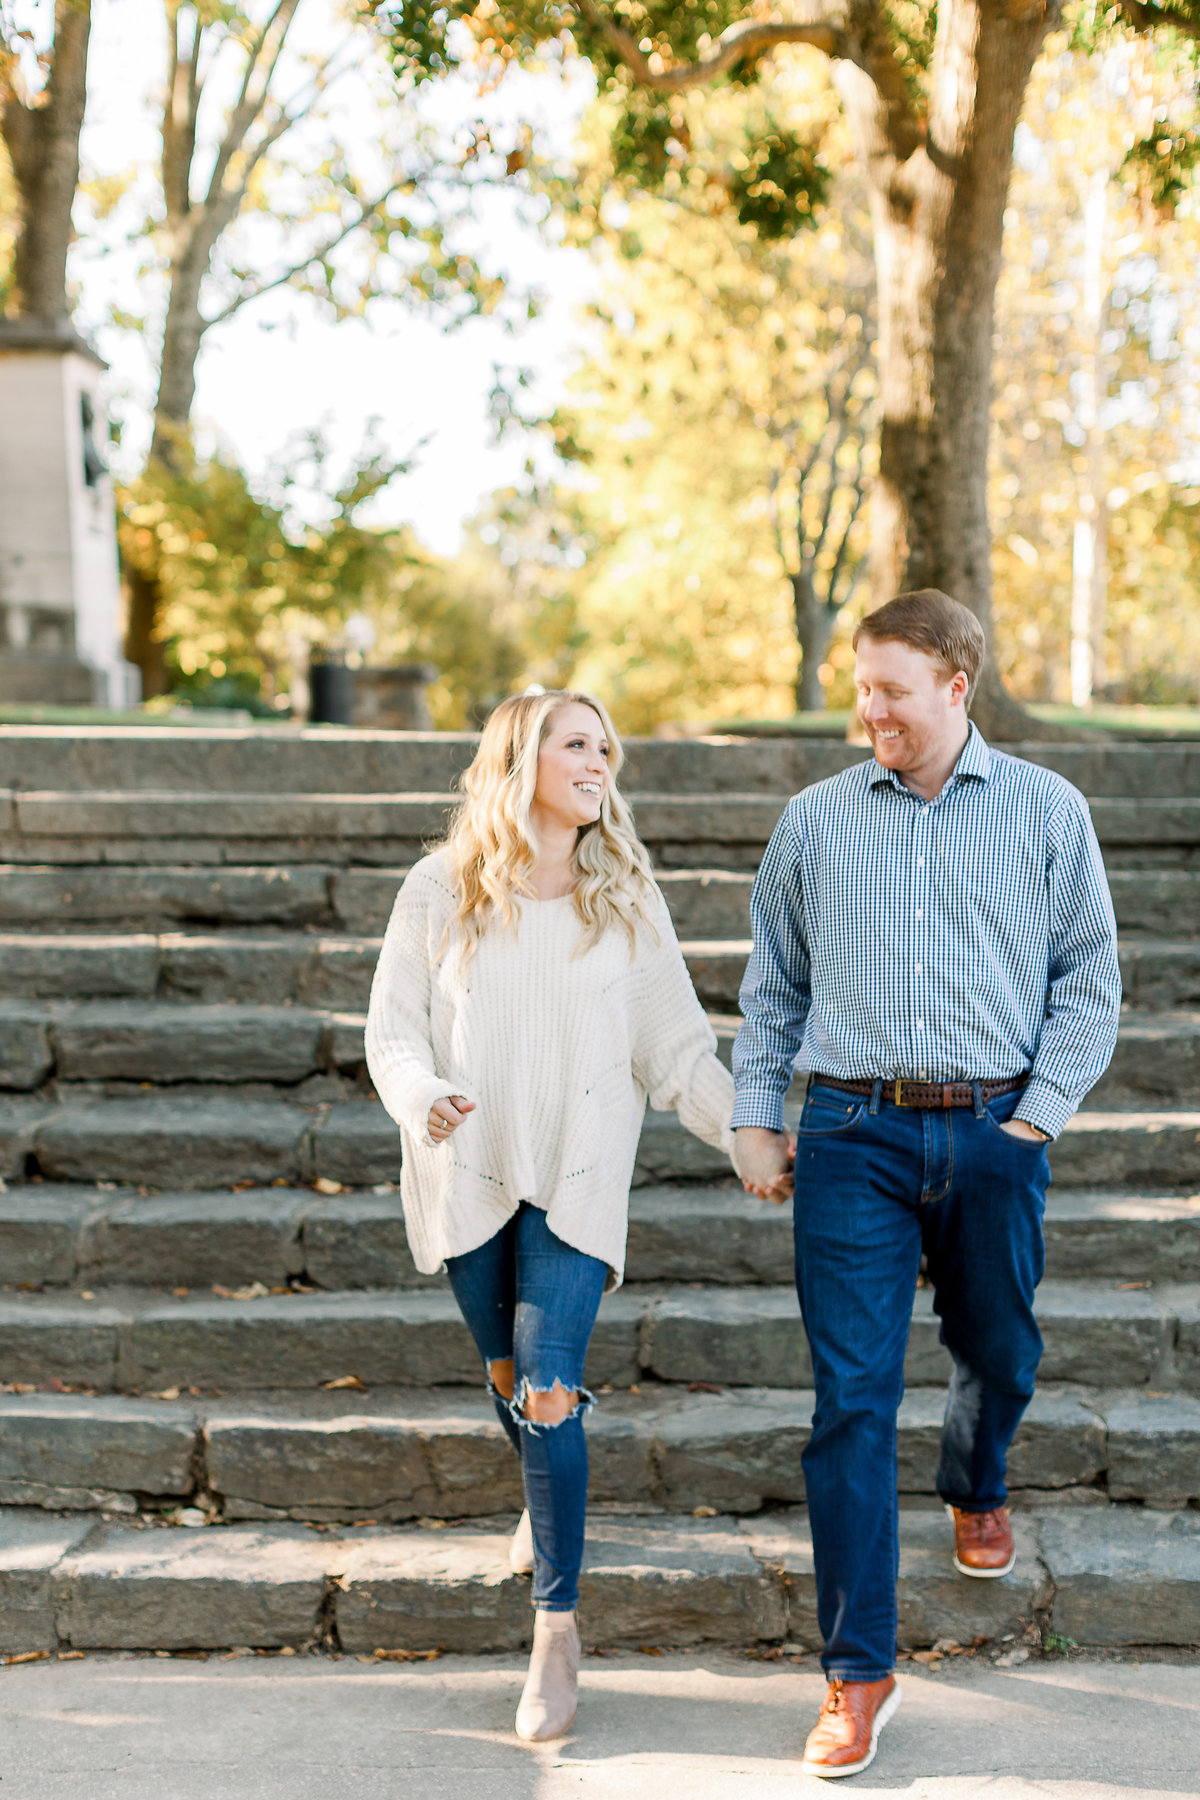 Lizzie Baker Photo _ Atlanta Engagement Photographer _ Atlanta Wedding Photographer _ Biltmore Wedding Photographer _ Foxhall Wedding Photographer _ Yew Dell Wedding54